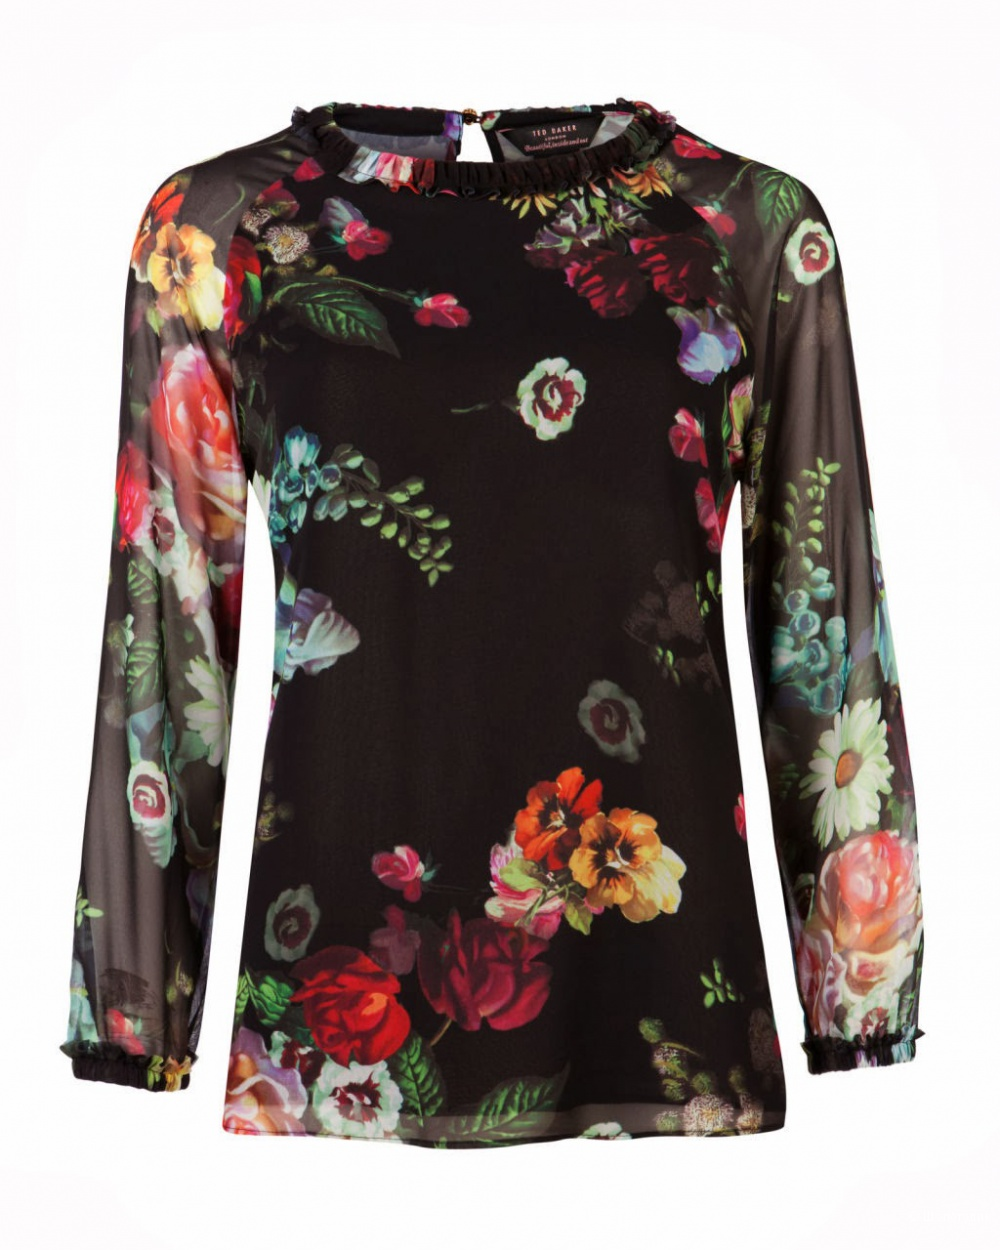 Блузка Ted Baker oil painting top размер 3 / рос.44-46